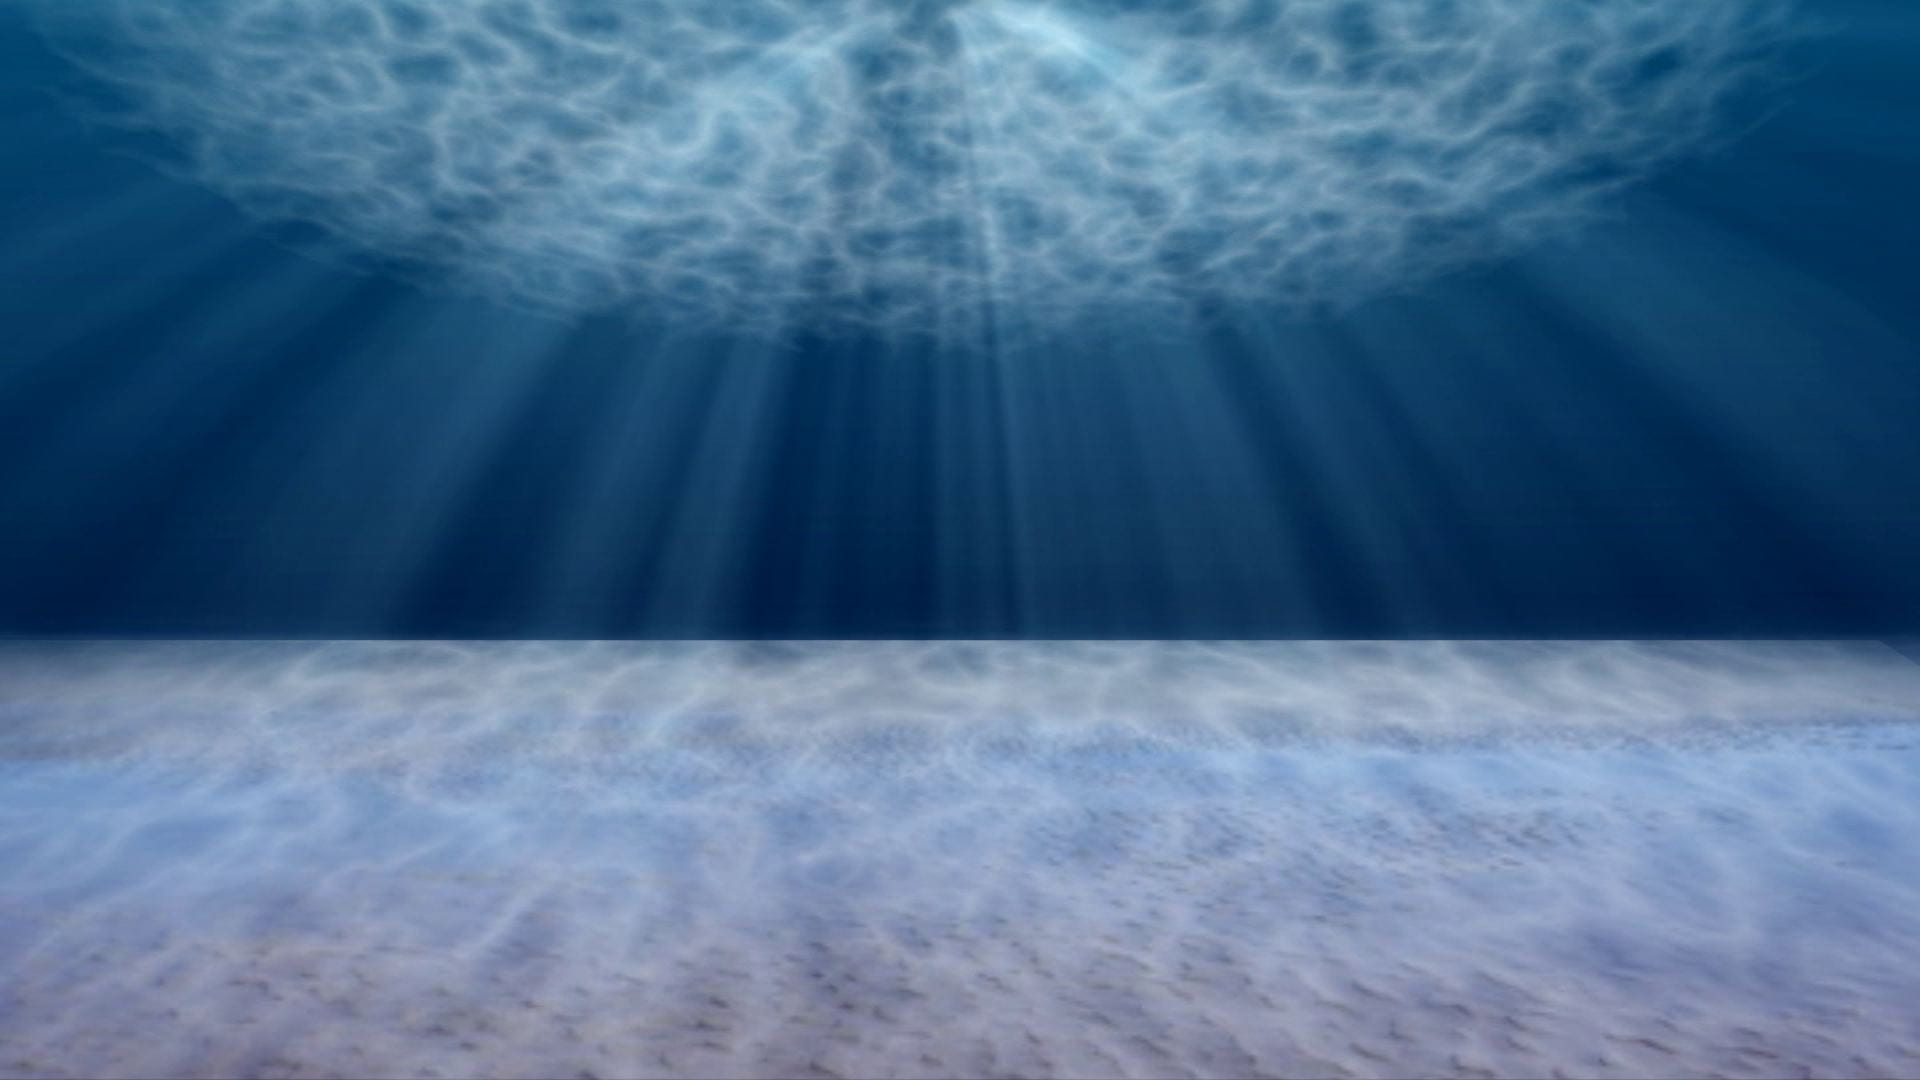 The underwater shot produced in Sony Vegas from scratch was made to imitate underwater scenes.